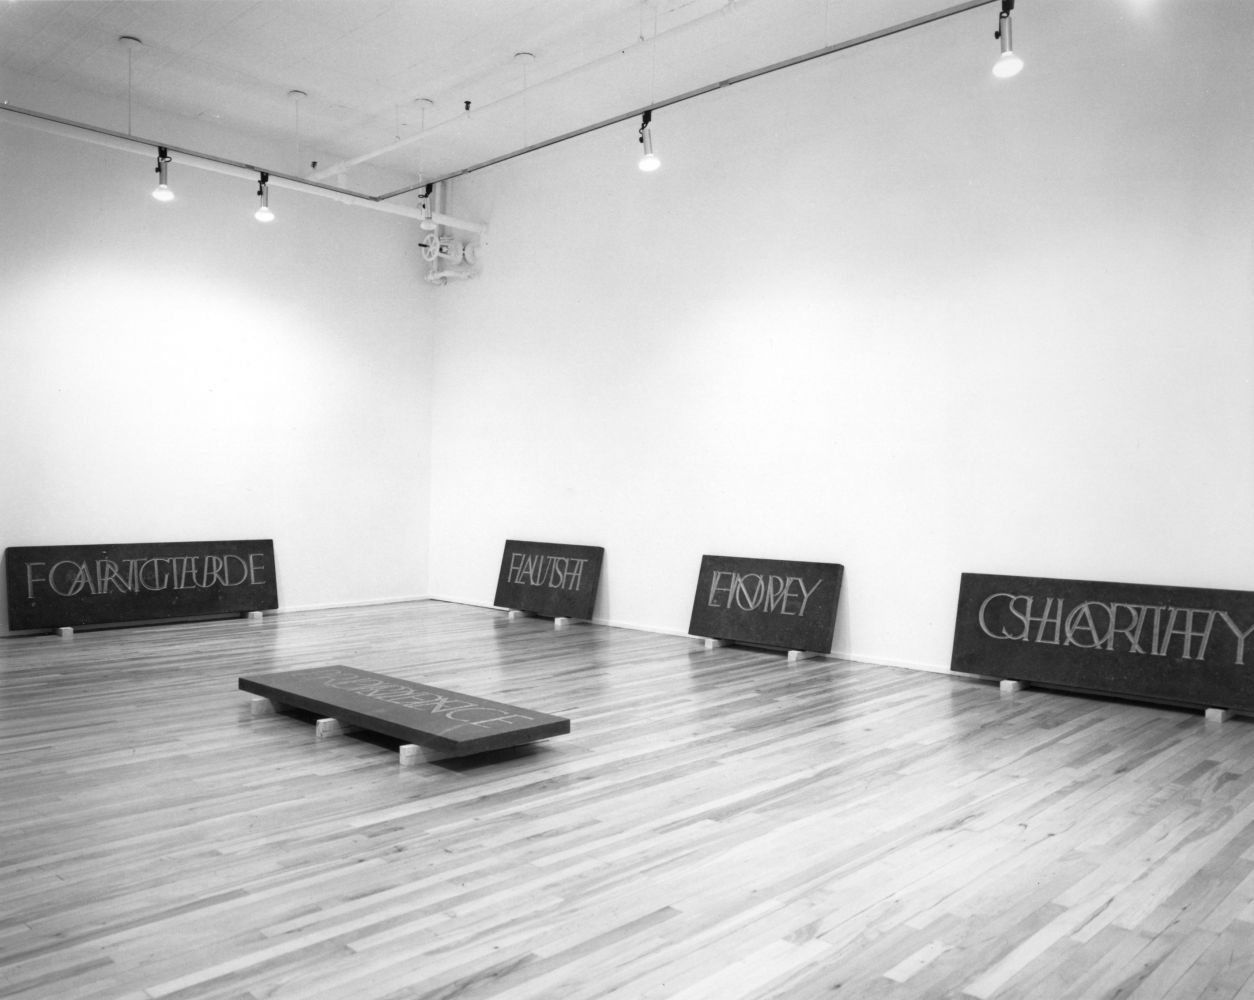 black and white installation view of five inscribed stone slabs place around a room